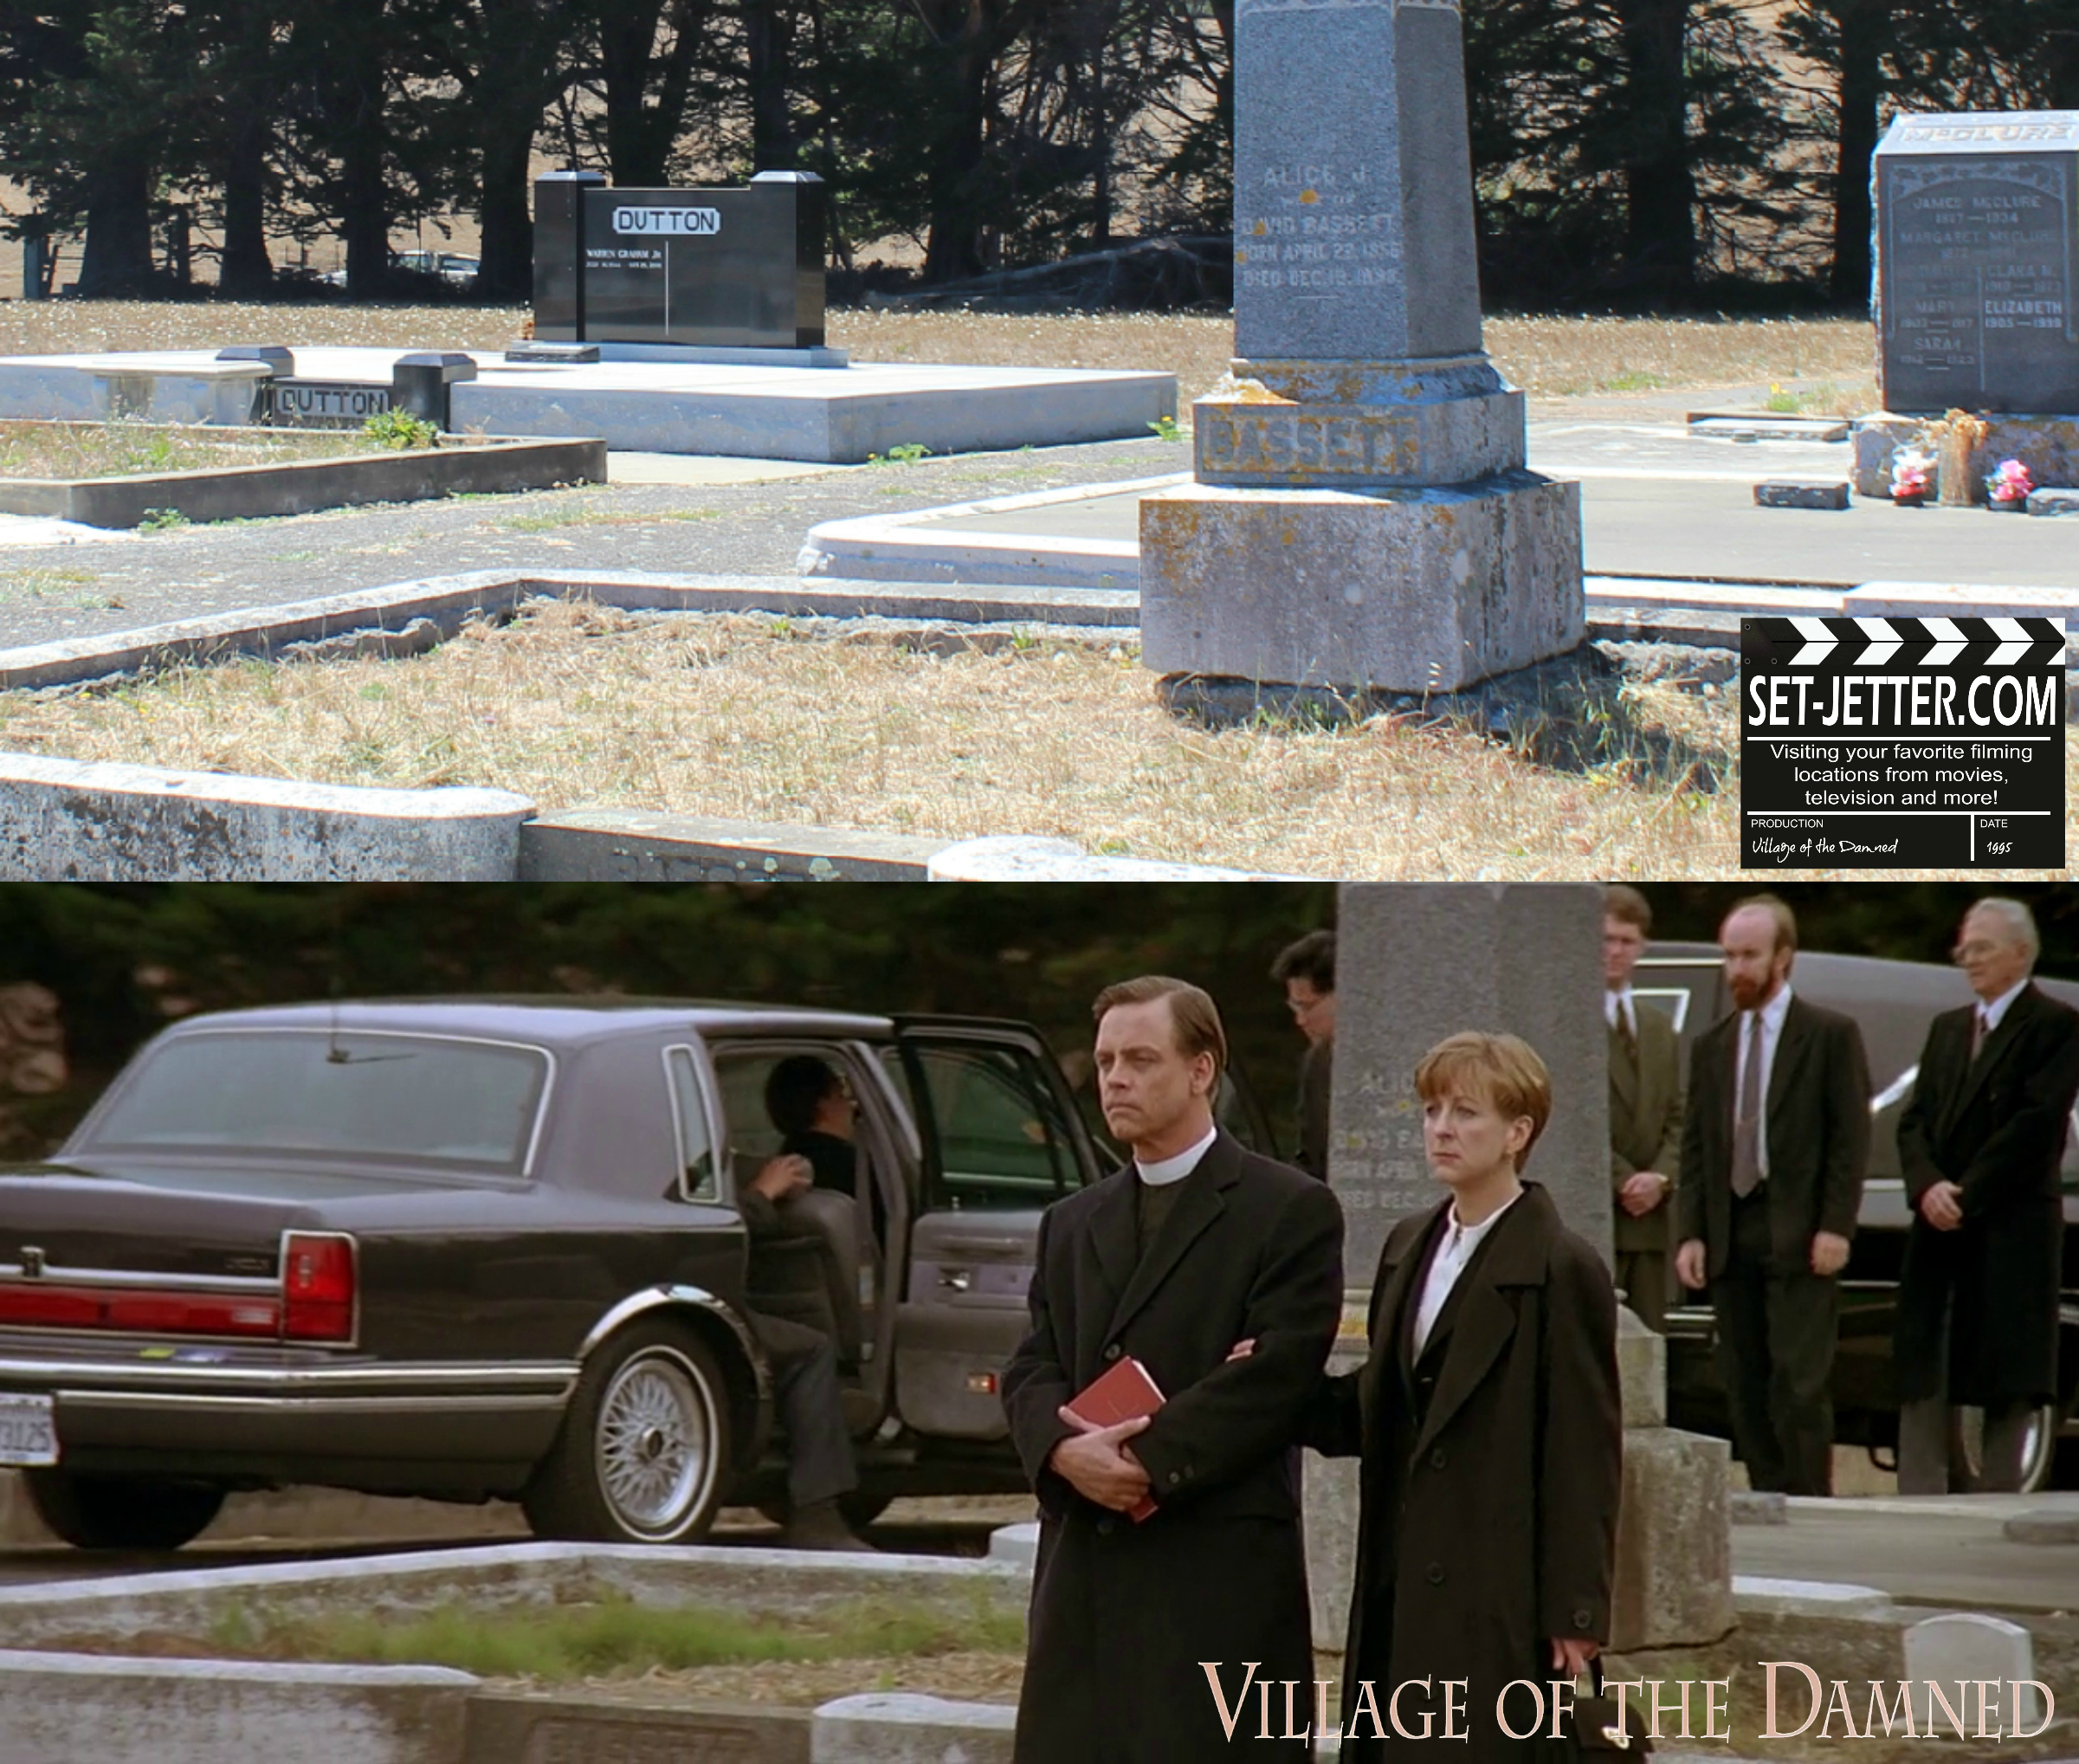 Village of the Damned comparison 81.jpg